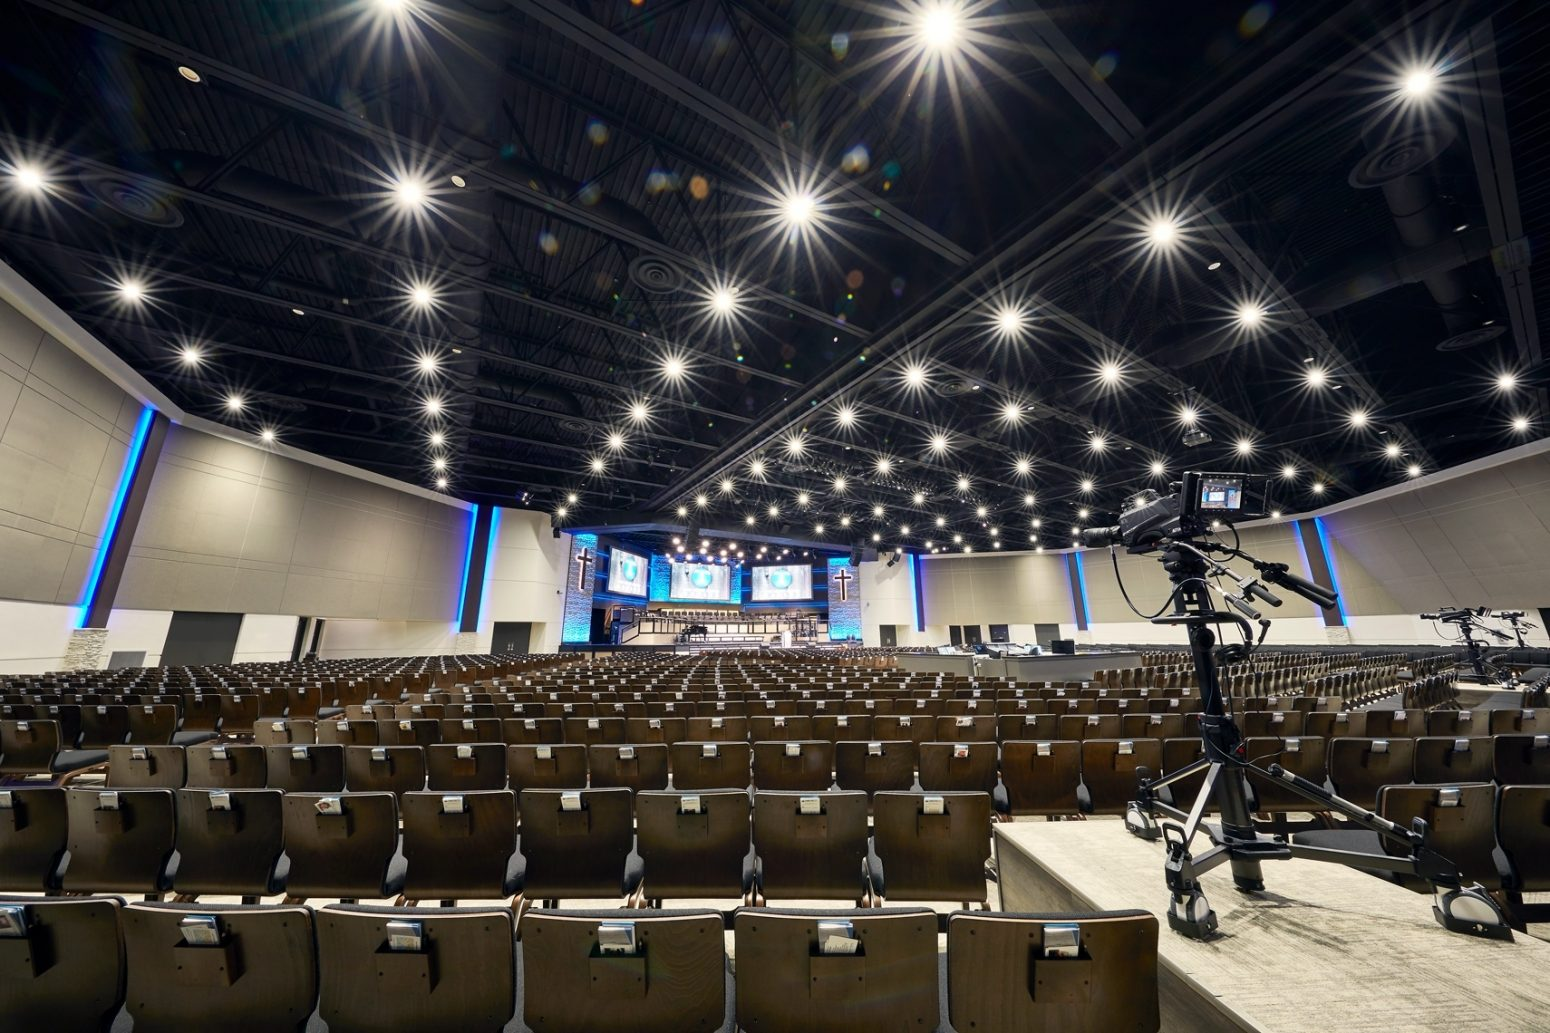 This shows the auditorium lighting systems we designed for First Baptist Church Naples.